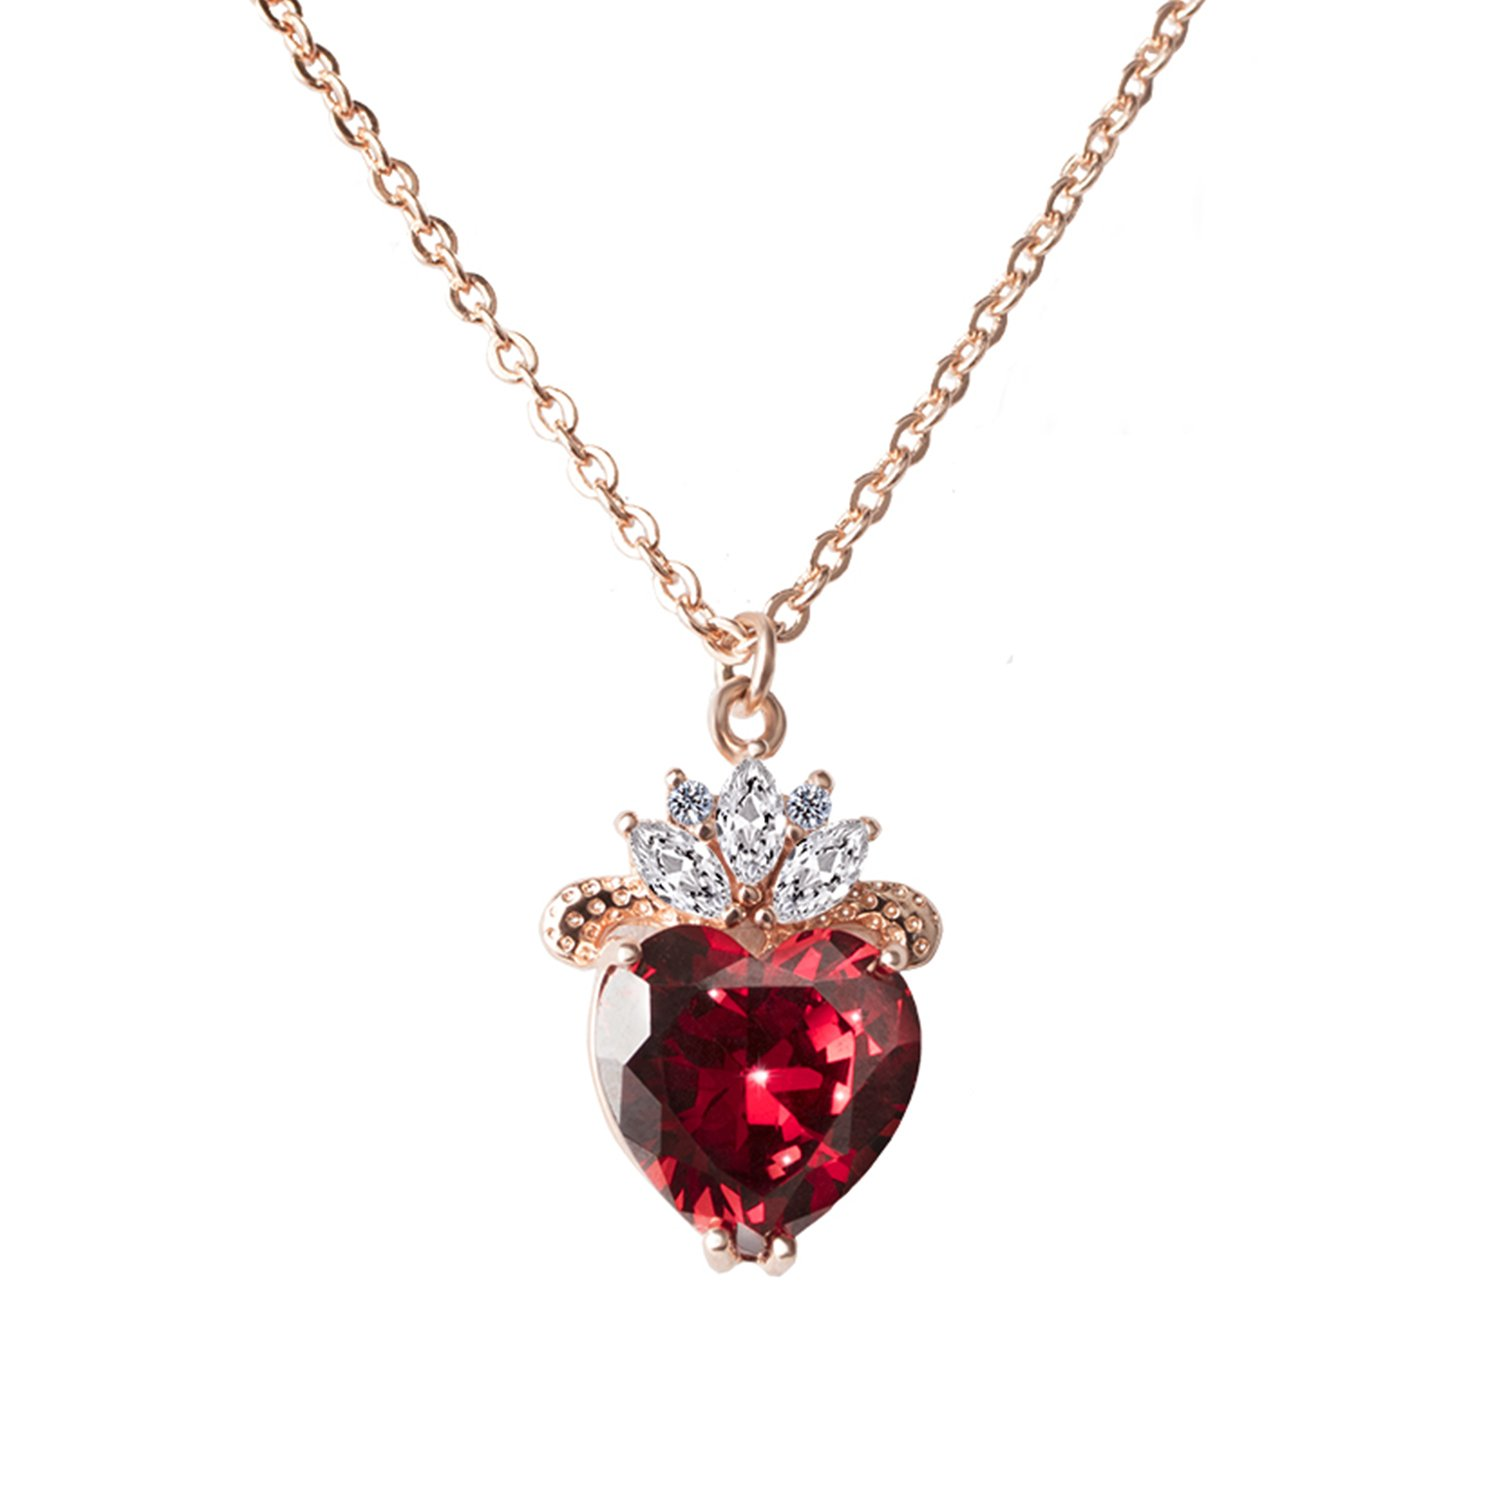 VINJEWELRY Queen of Hearts Evie Costume Necklace Descendants Ruby Red Heart Fashion Jewelry Gift for Her